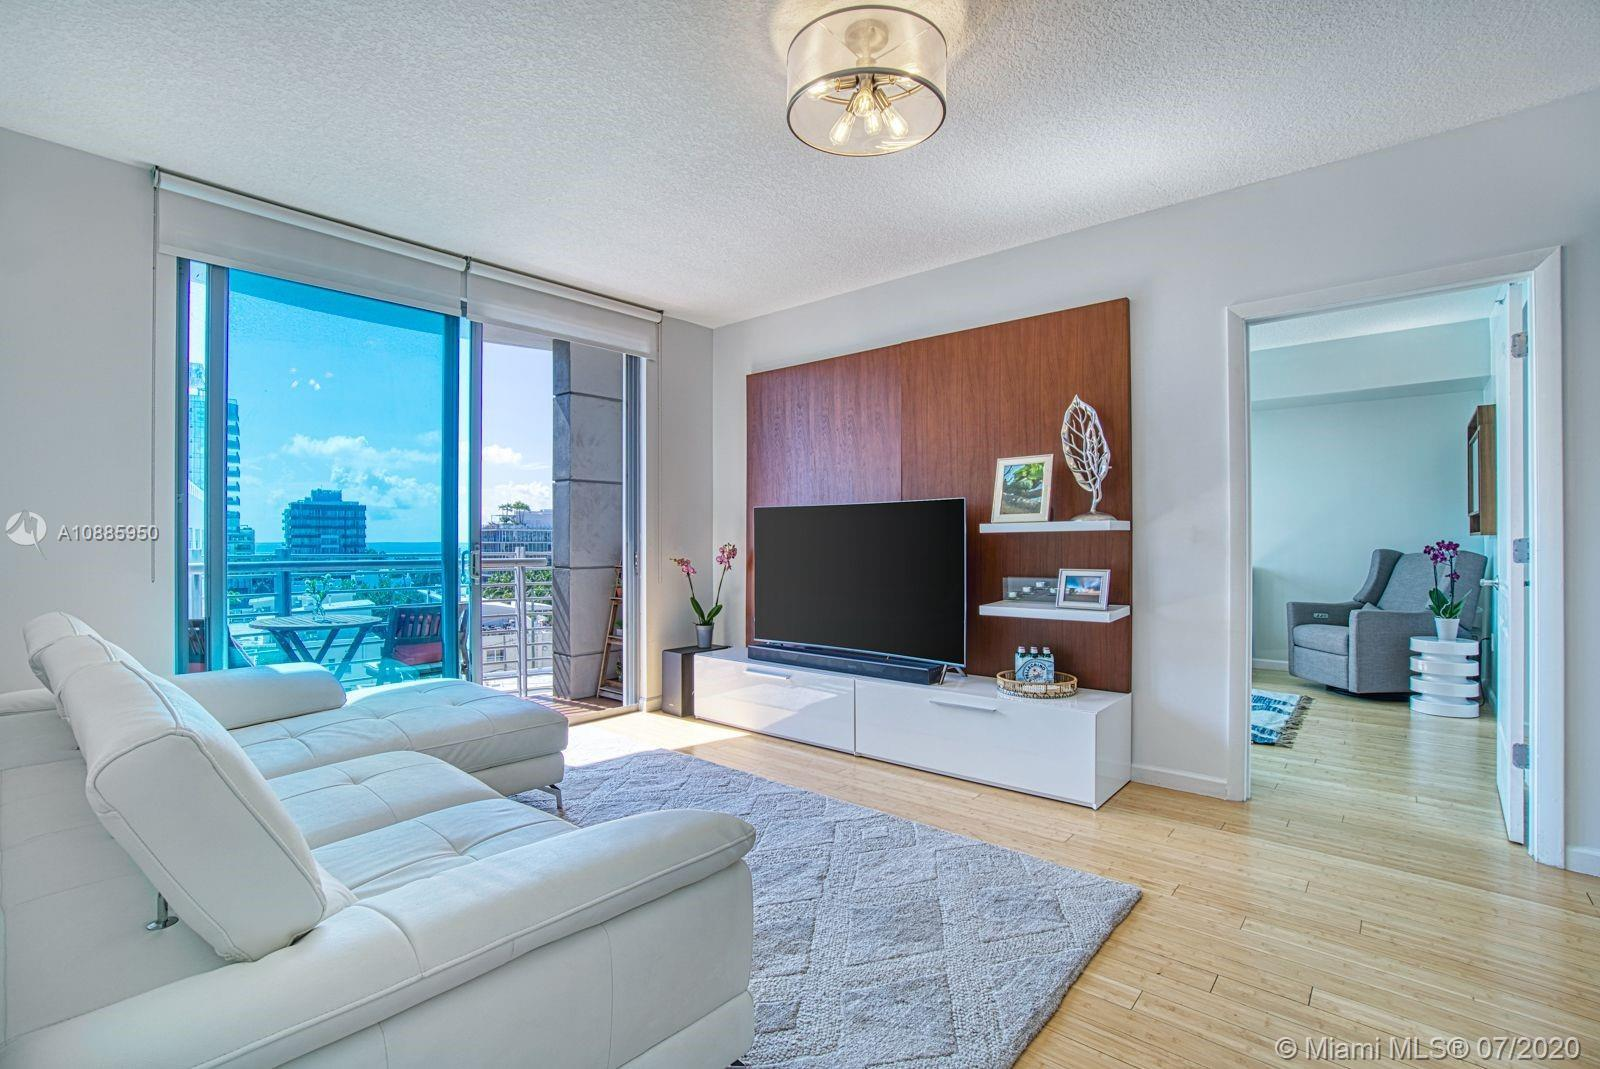 The Cosmopolitan sits in the very center of the highly coveted South of 5th neighborhood. Unit 1805